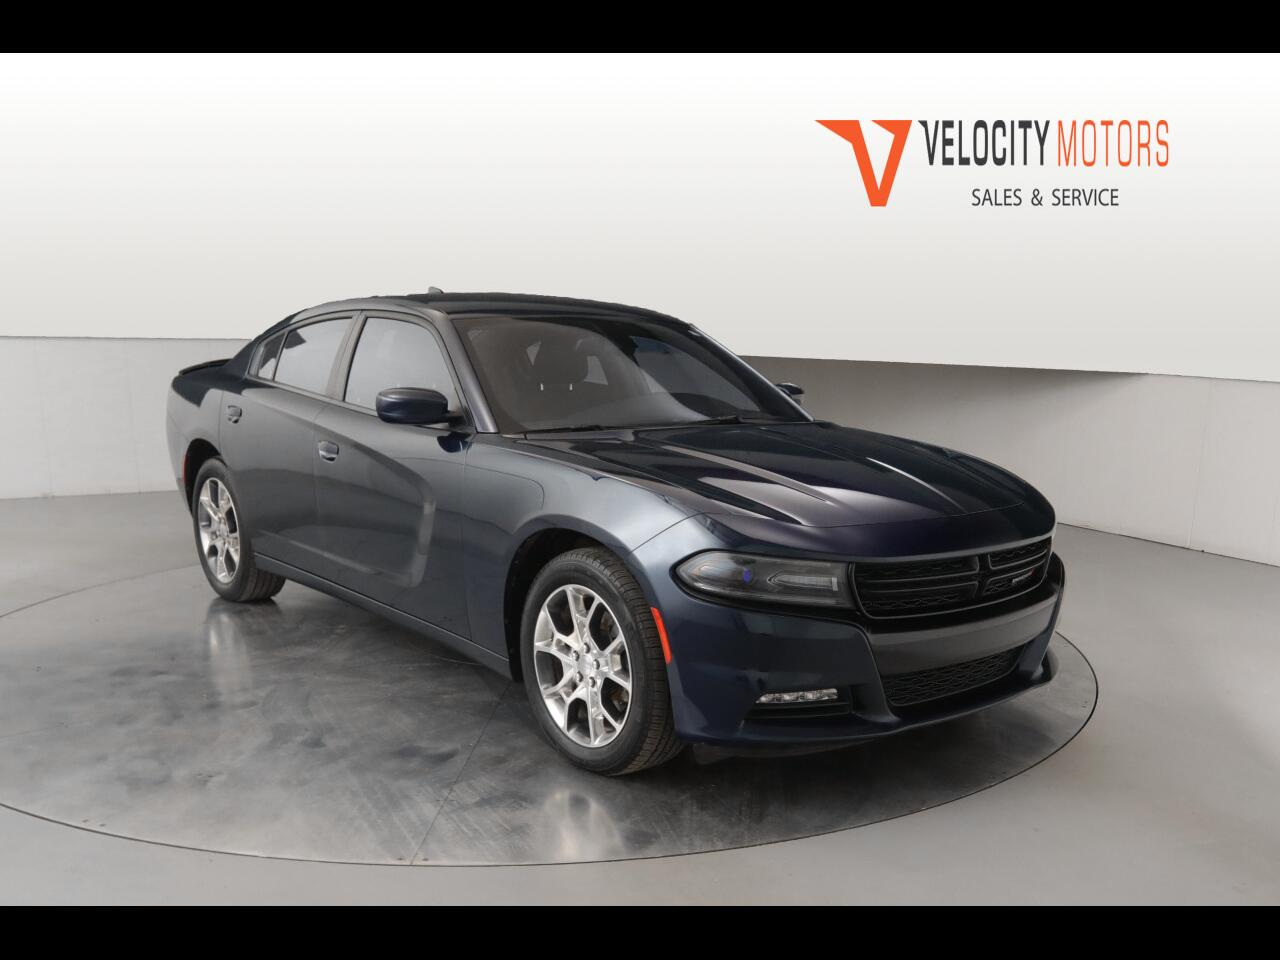 Dodge Charger Rallye AWD 2015